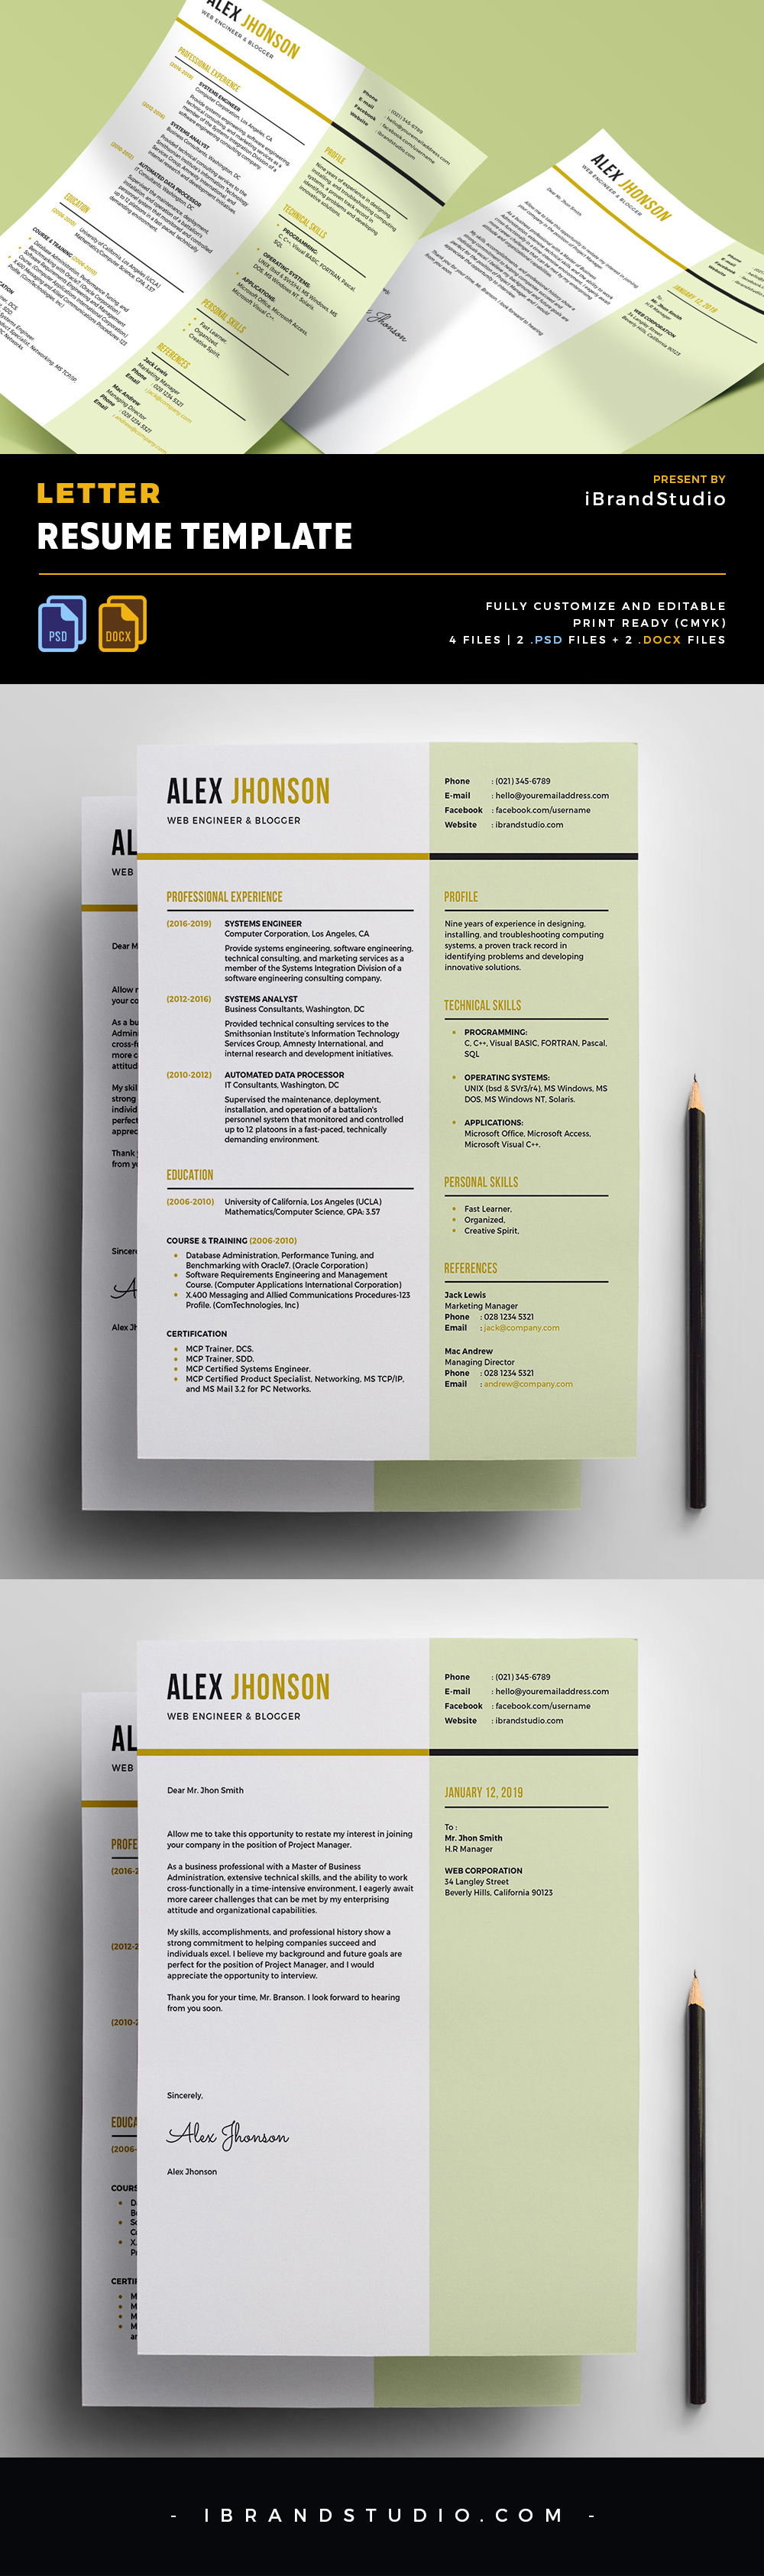 Free Letter Resume Template (PSD, DOCX)